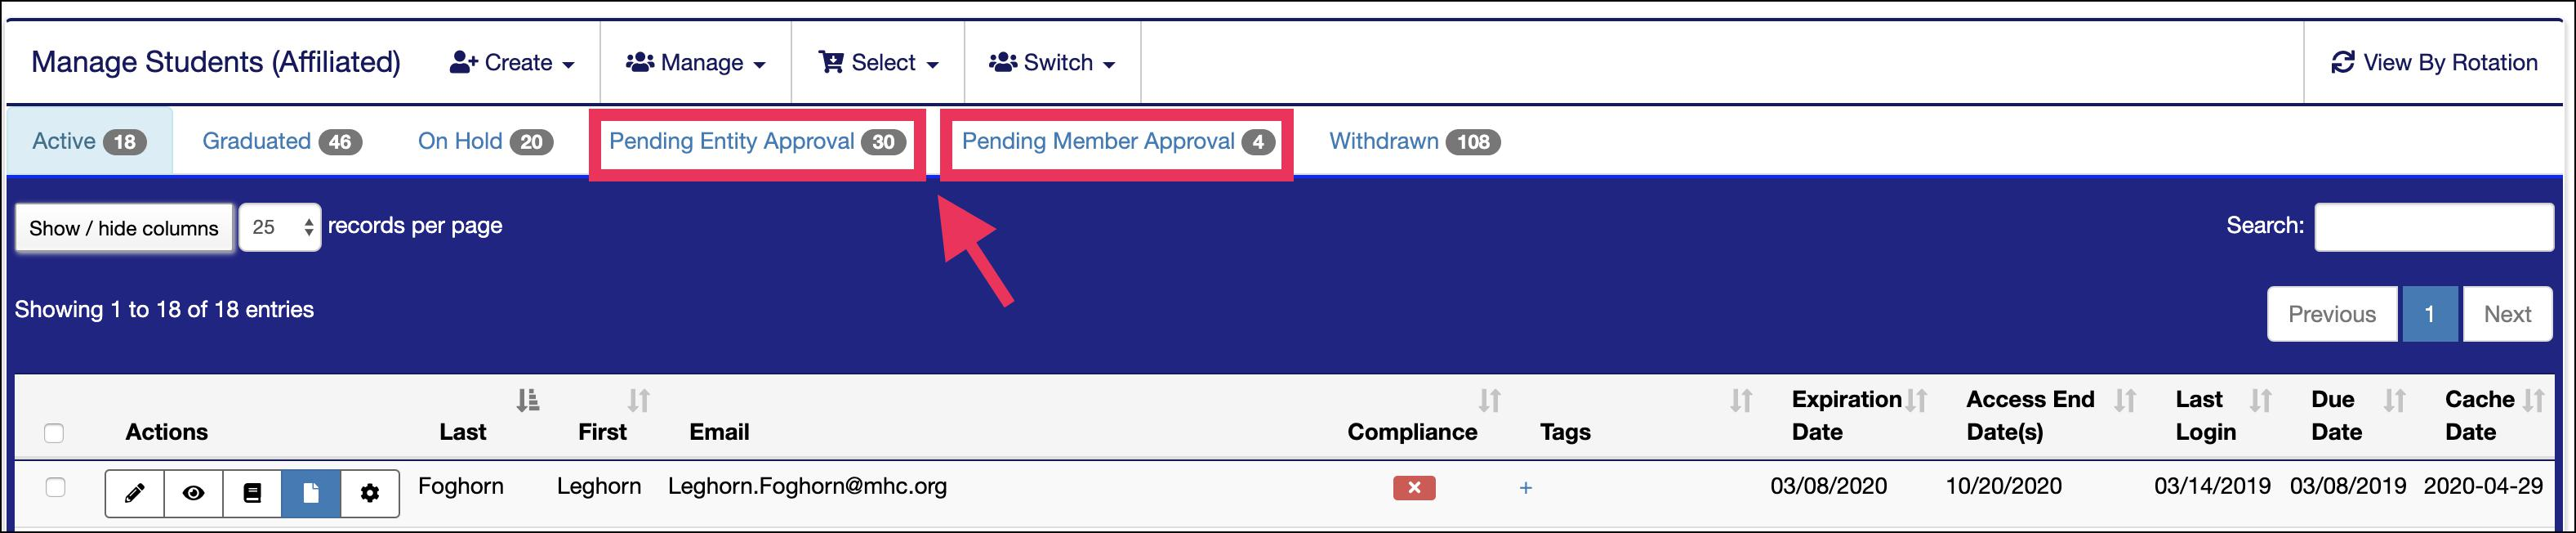 Manage Members page pointing to Pending Approval filter butons